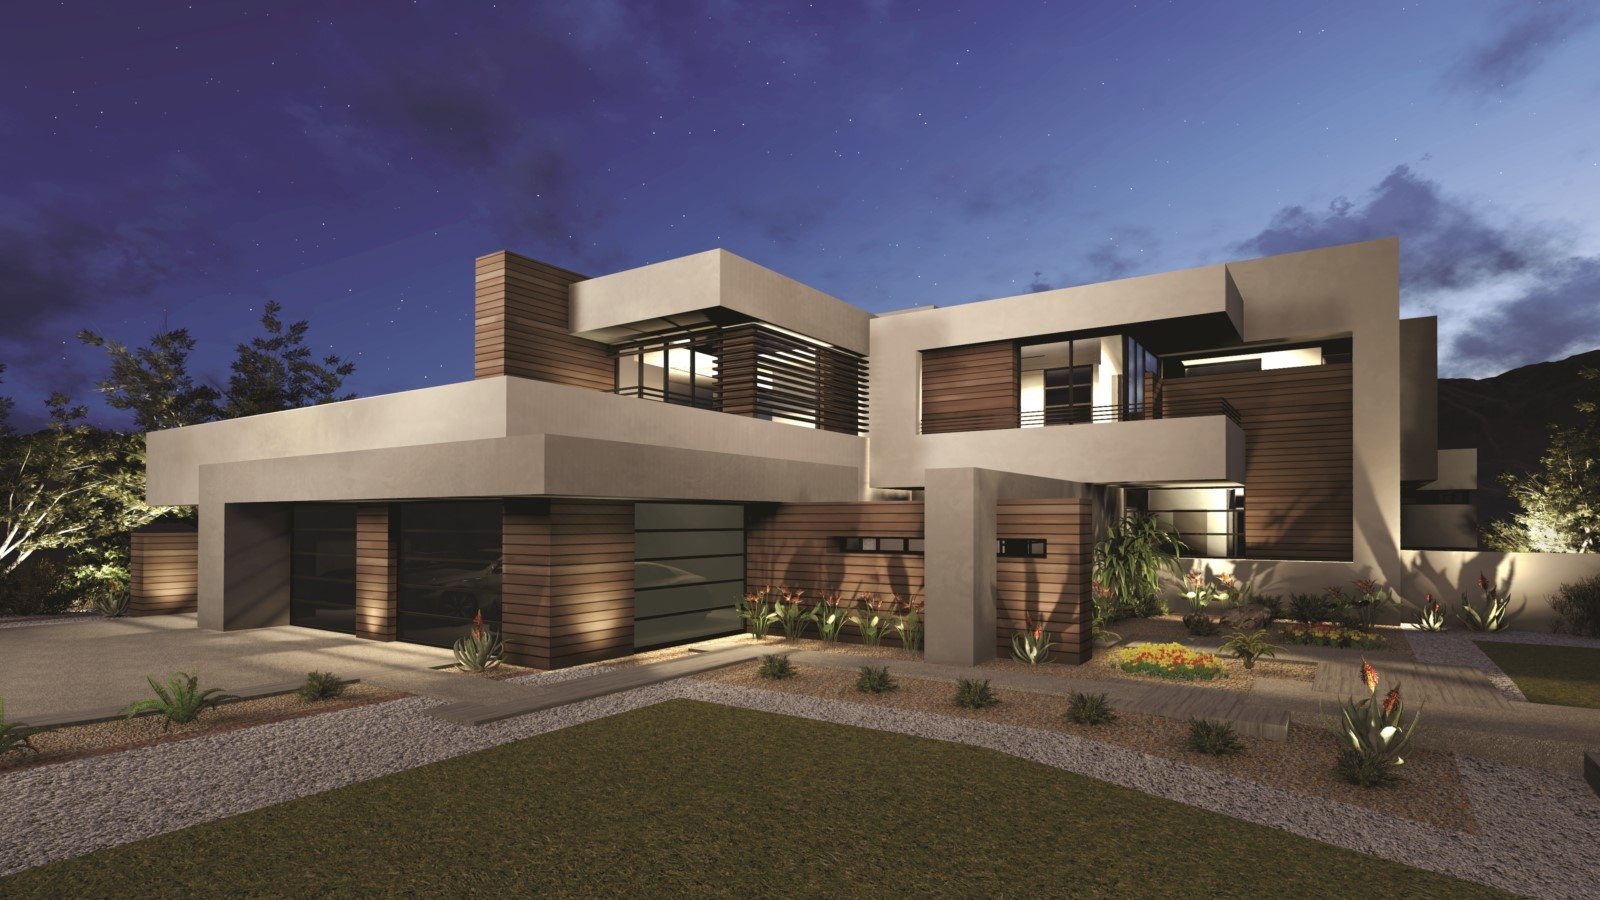 Architects in Henderson - Top 10 Architects in Henderson - Sheet10